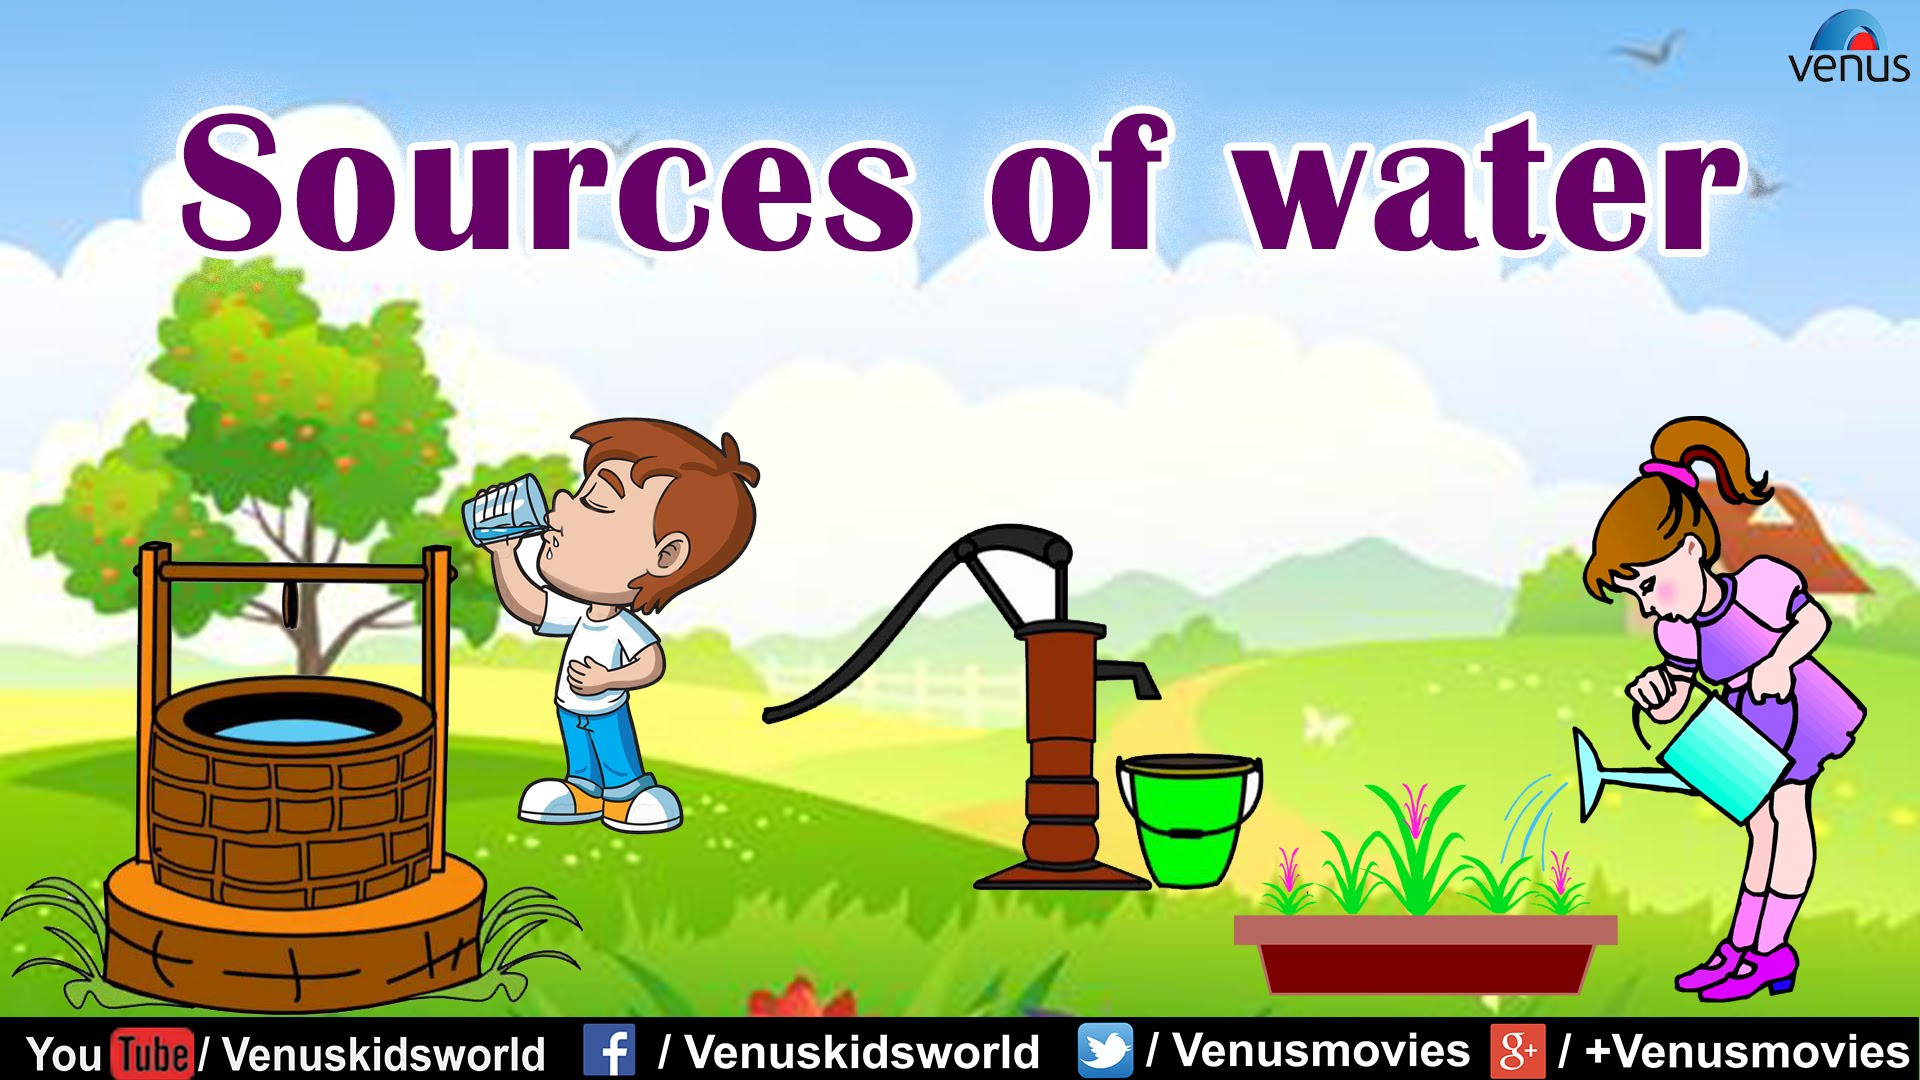 Sources Of Water Clipart